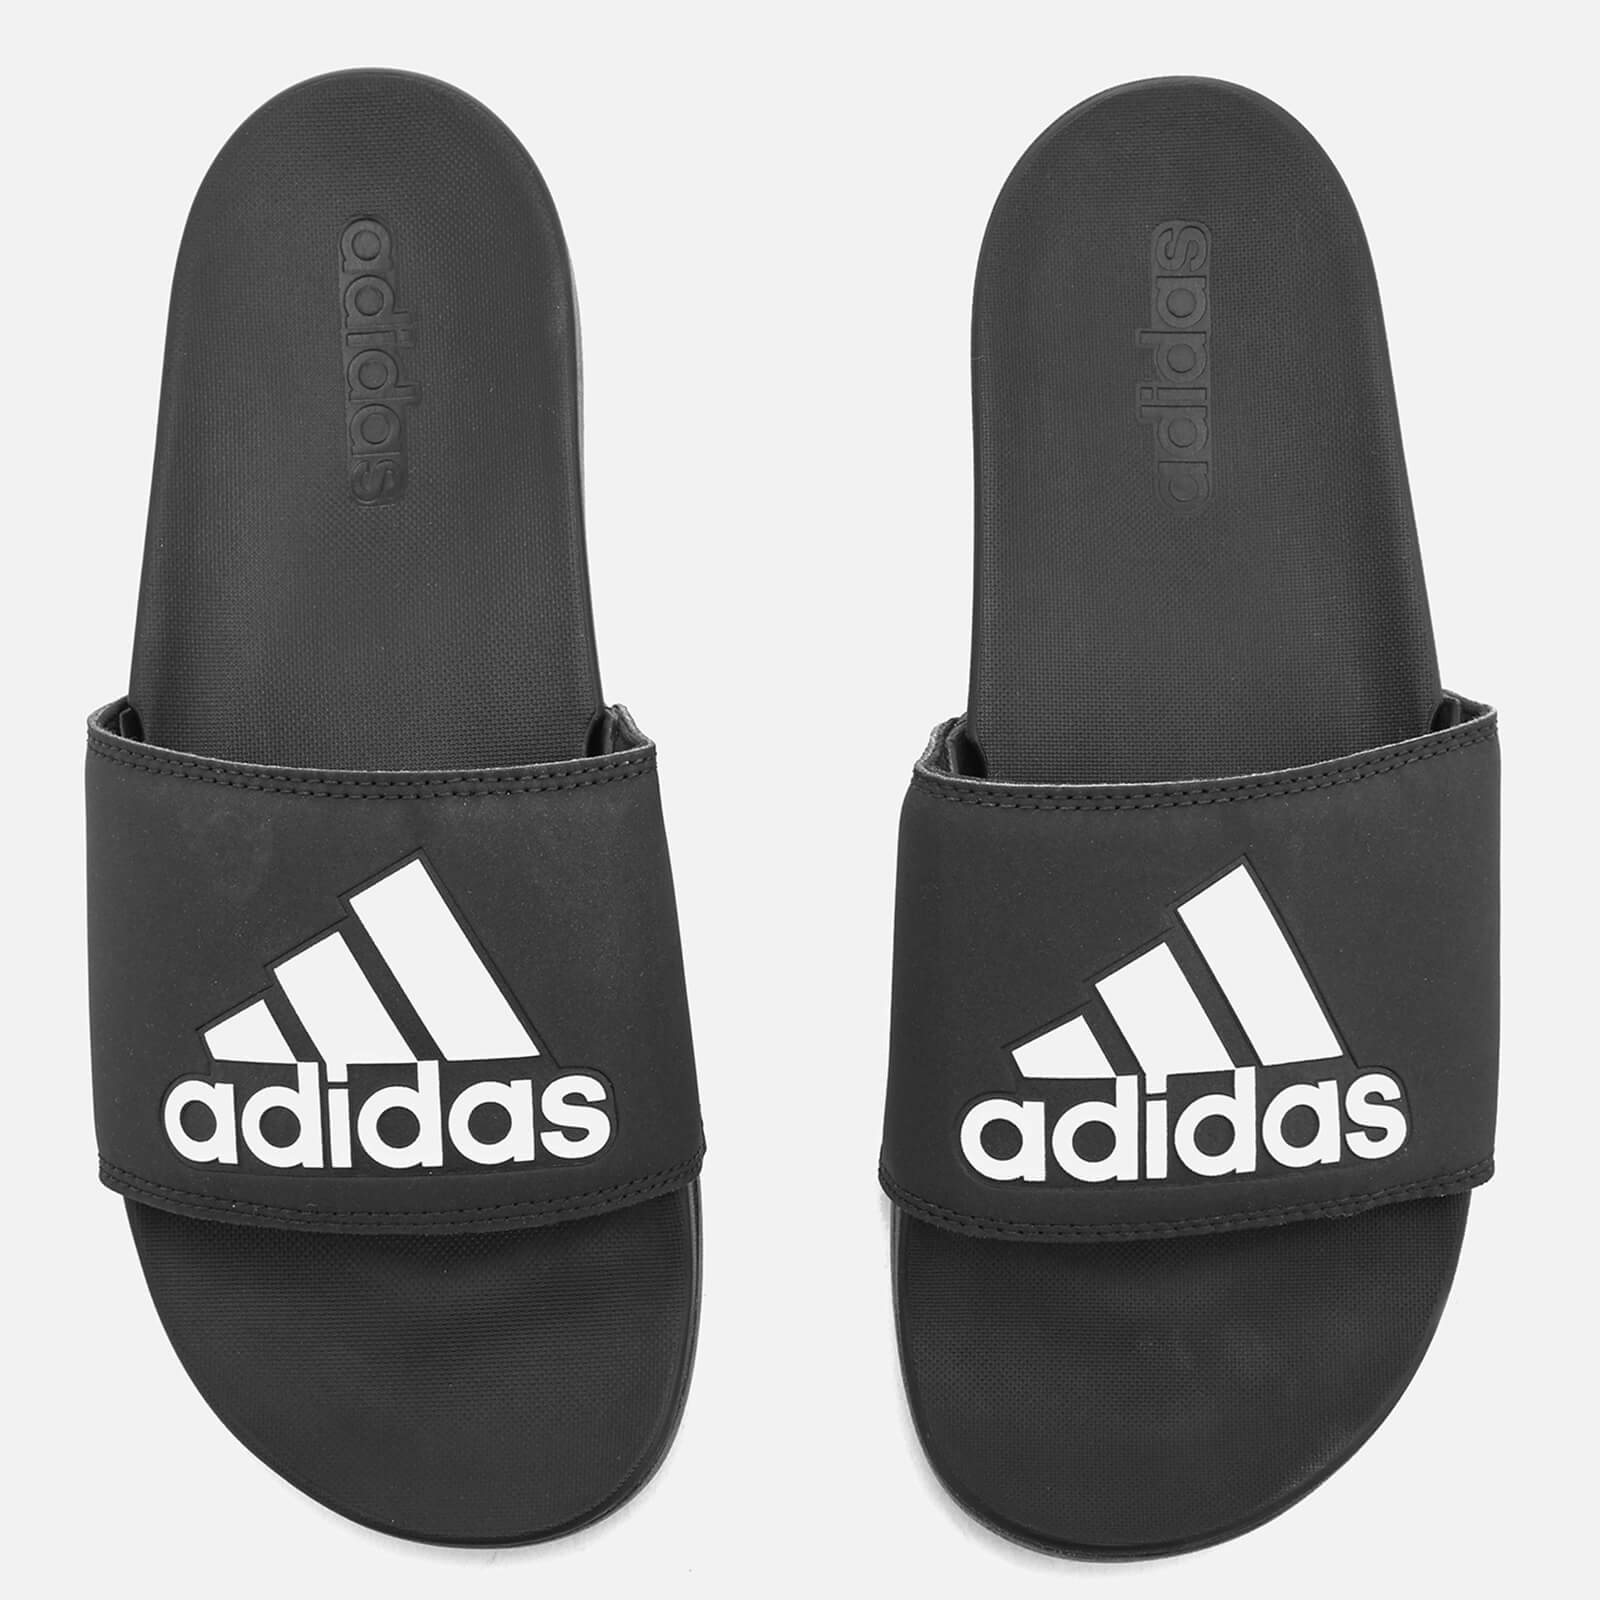 6400e42a5e adidas Men s Adilette Logo Slide Sandals - Core Black Sports   Leisure